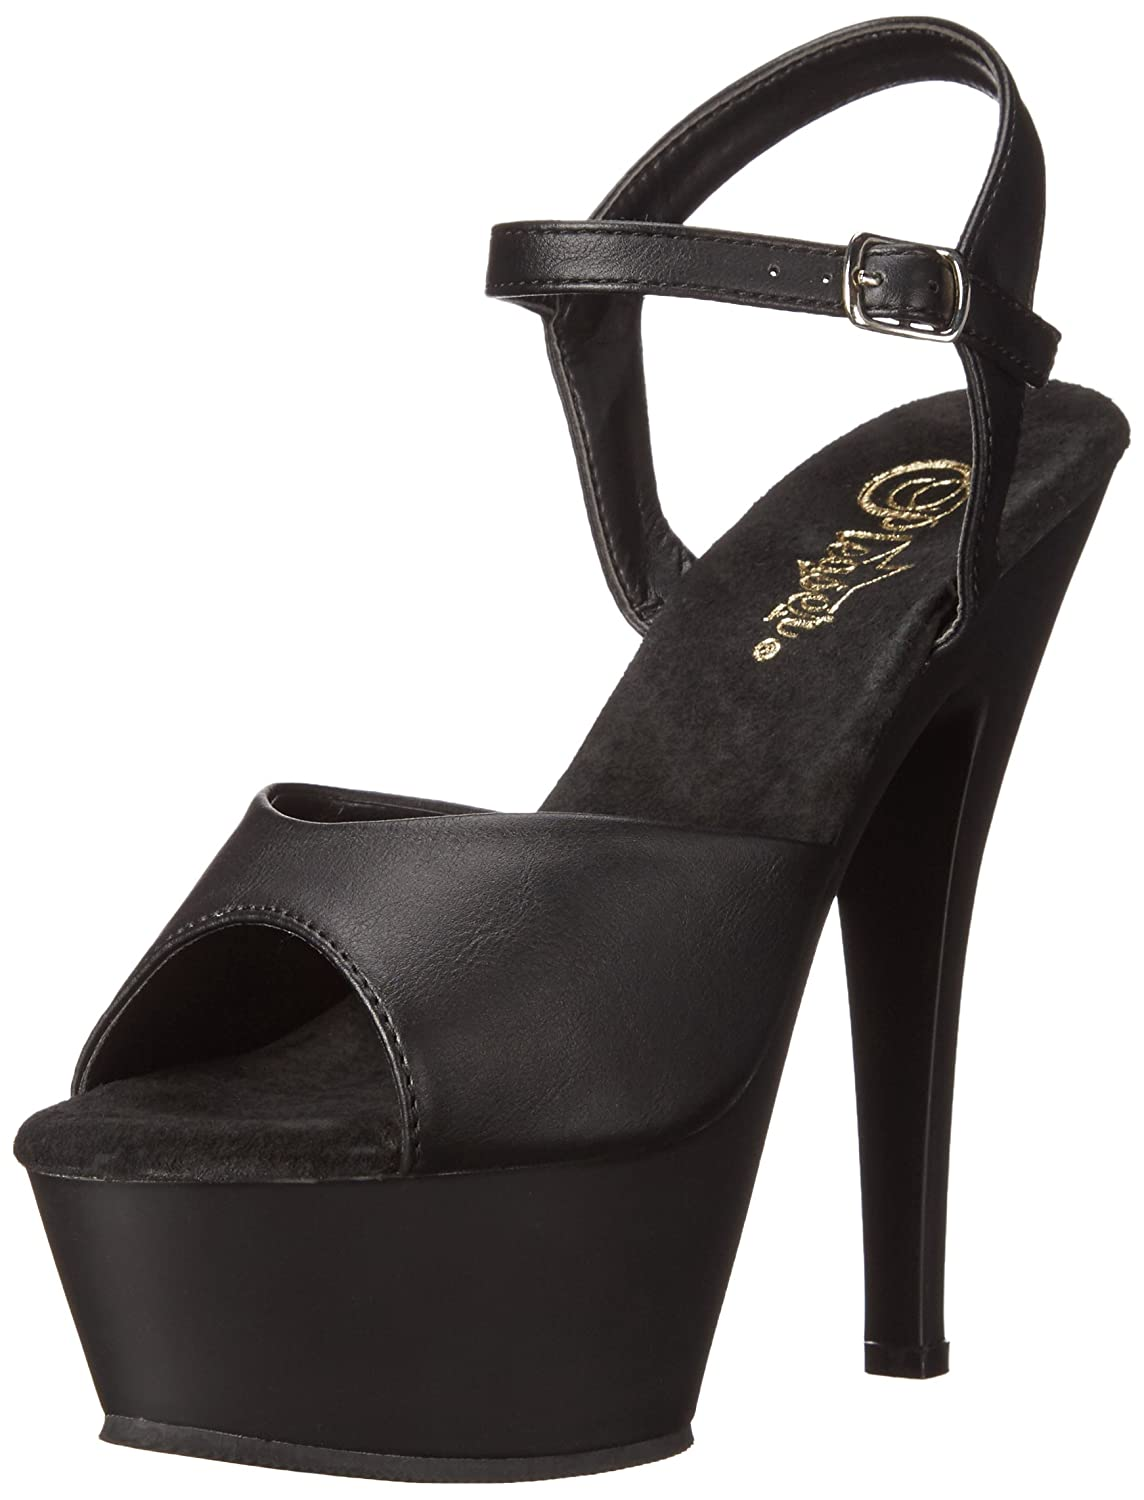 Pleaser Women's KISS209/BPU/M Platform Dress Sandal B00QPTIGUG 5 B(M) US|Black Faux Leather/Black Matte